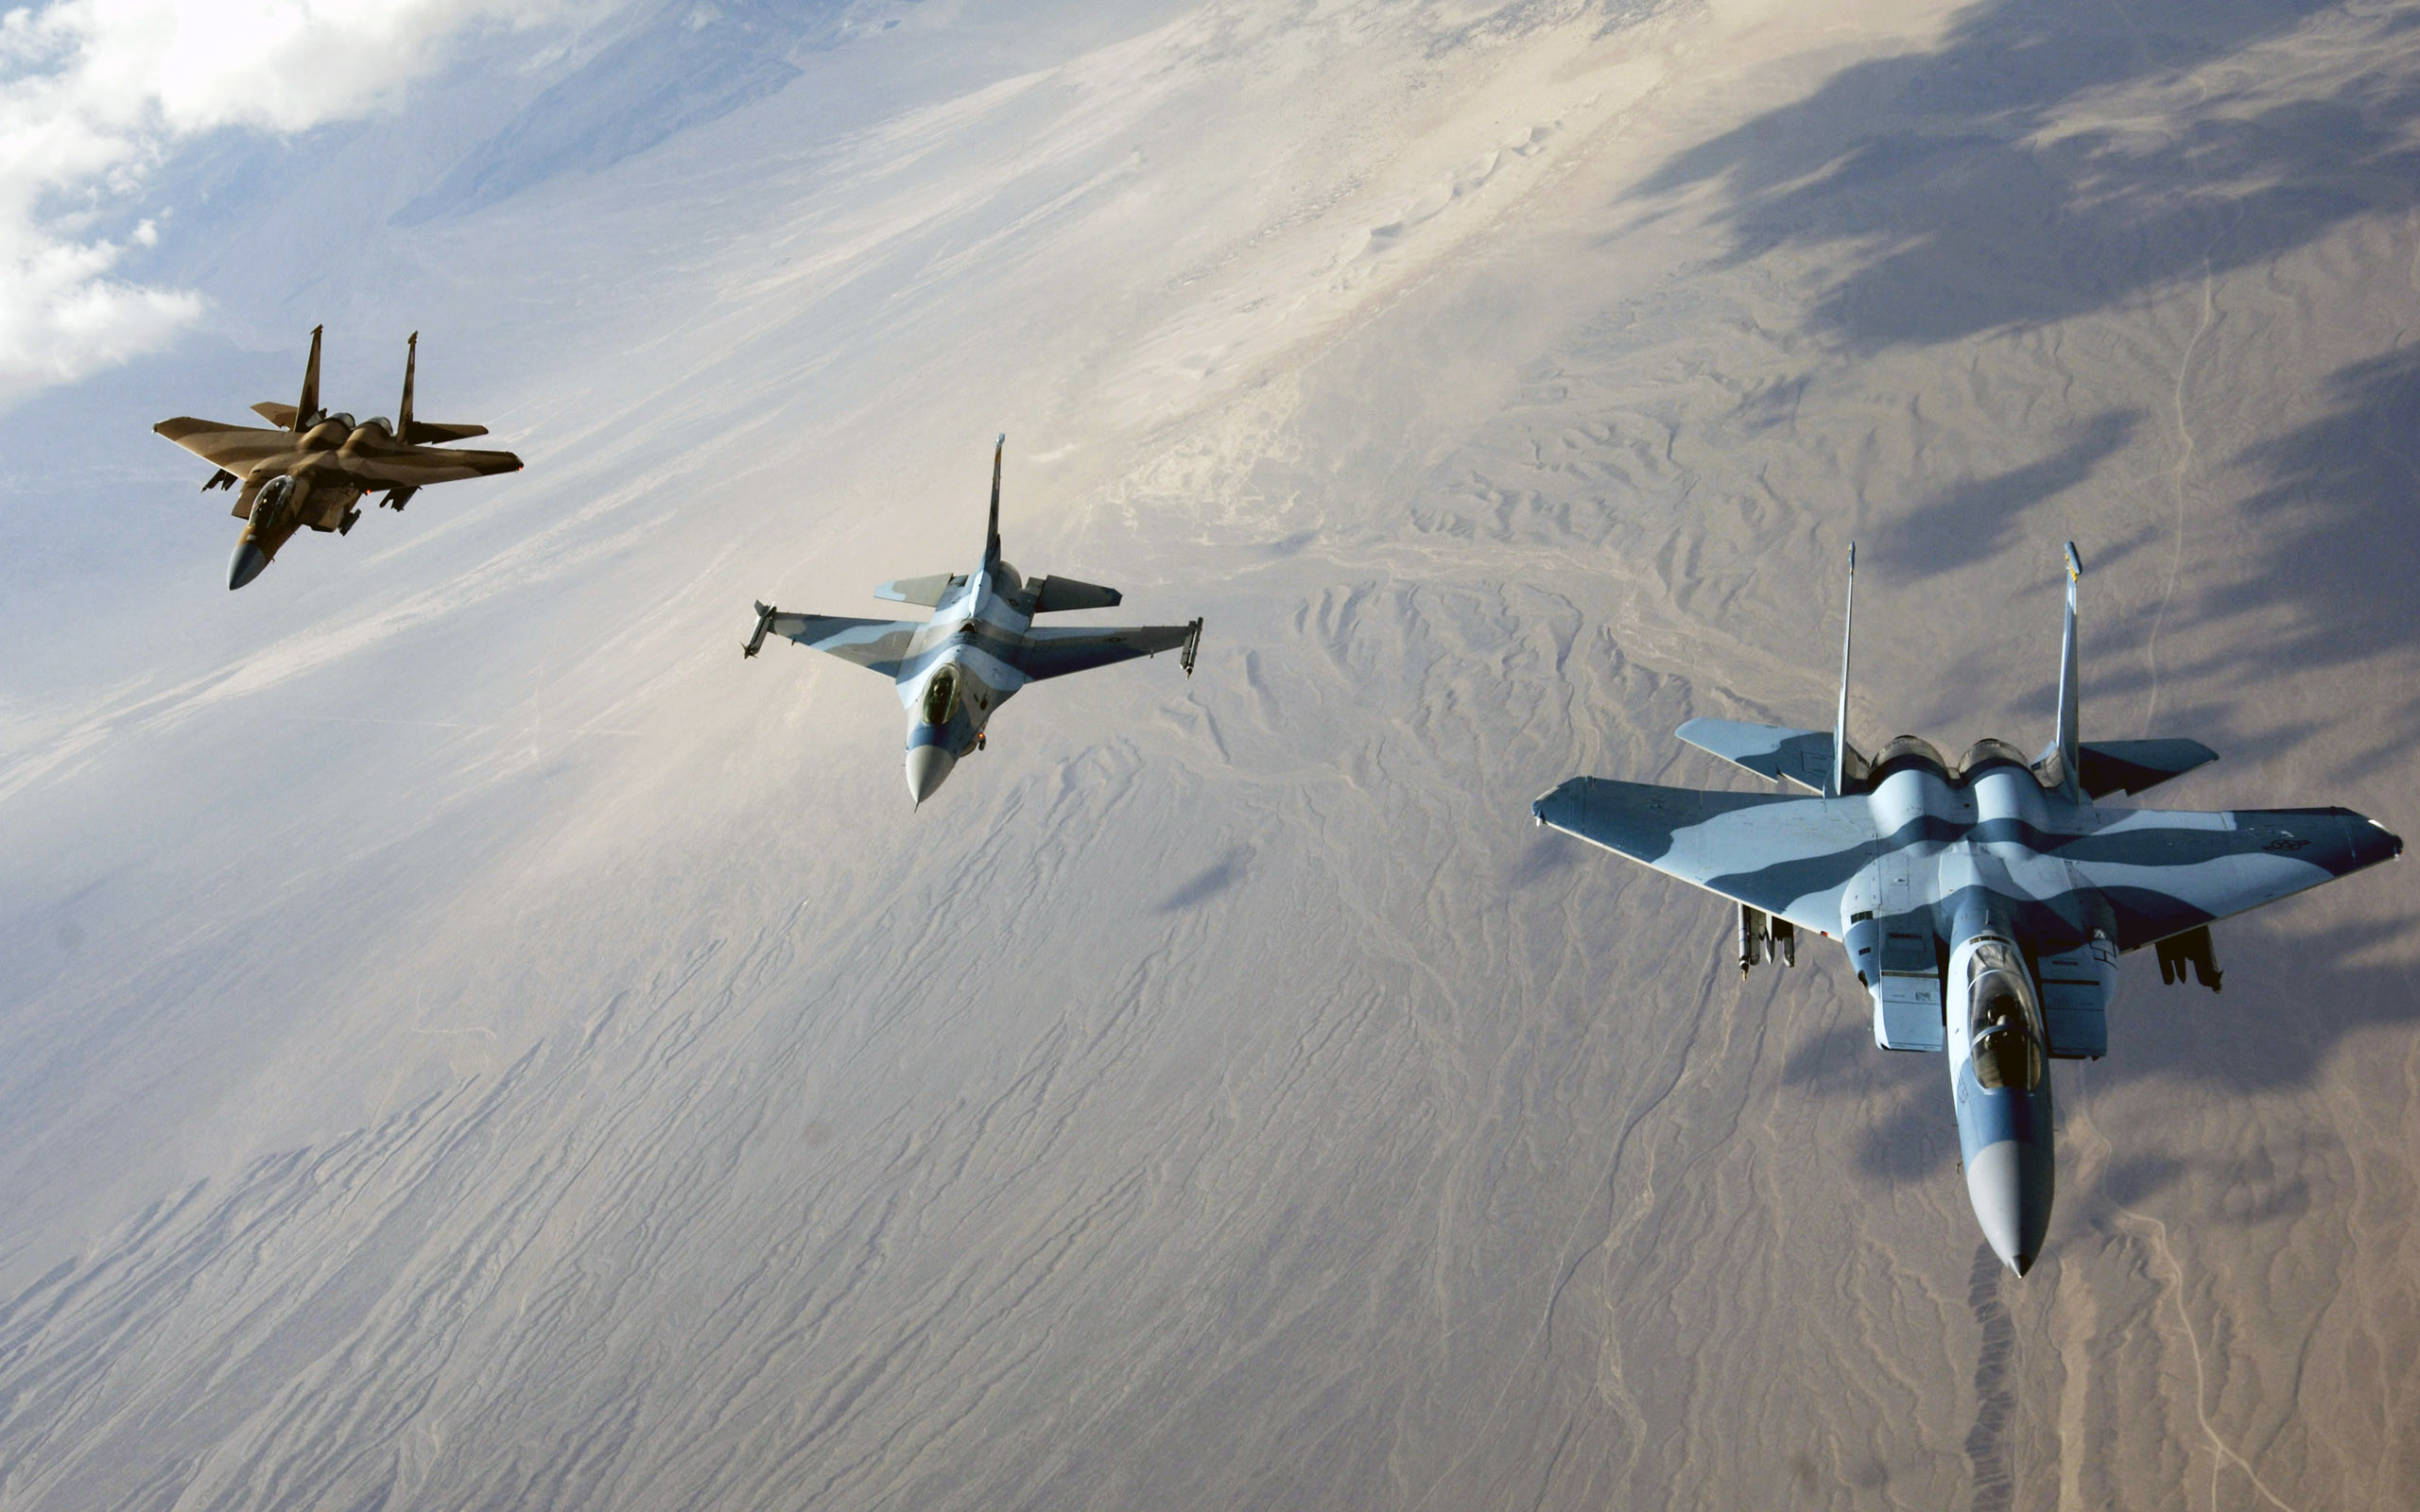 HD F 15 Eagles and F 16 Fighting Falcon Screensaver Backgrounds